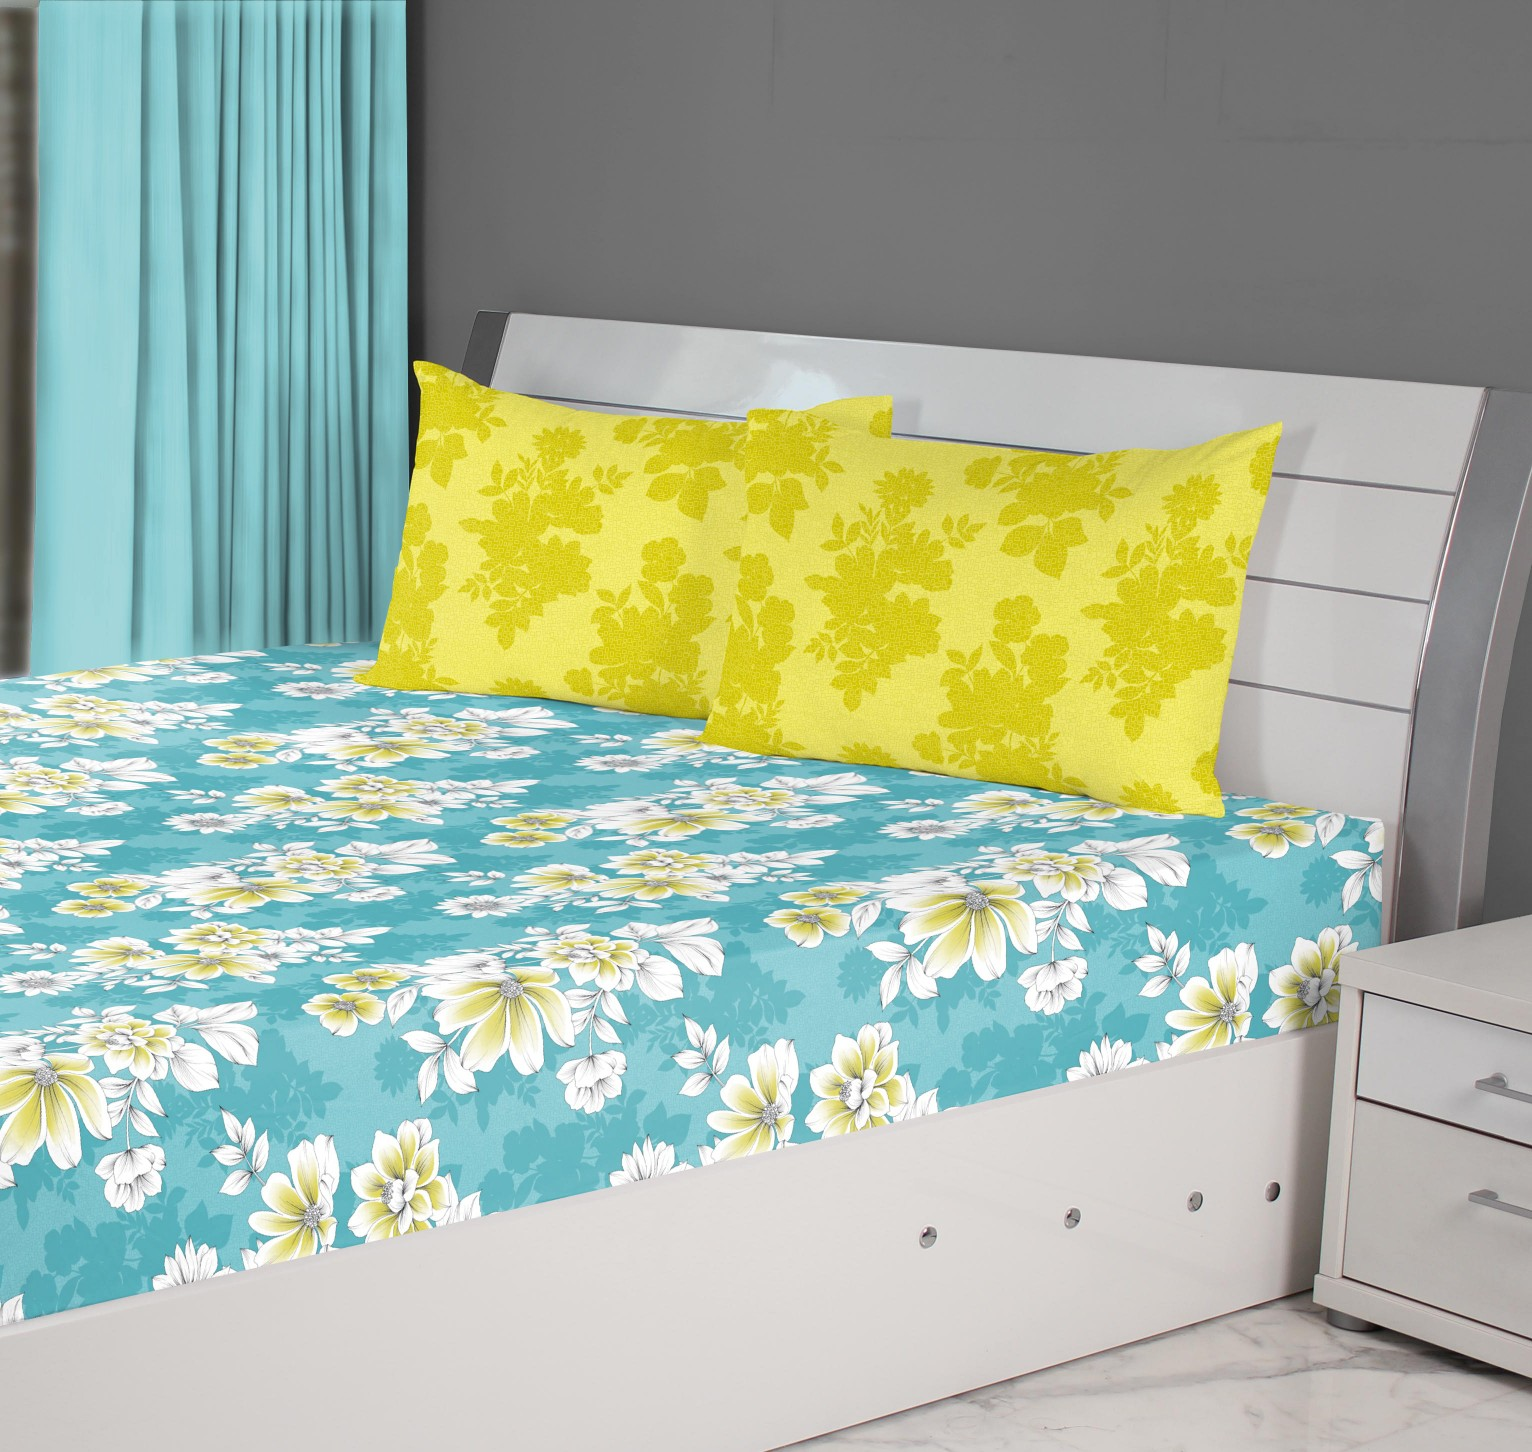 Fiesta Leaf Cotton Double Bedsheets in Mustard Colour by Living Essence